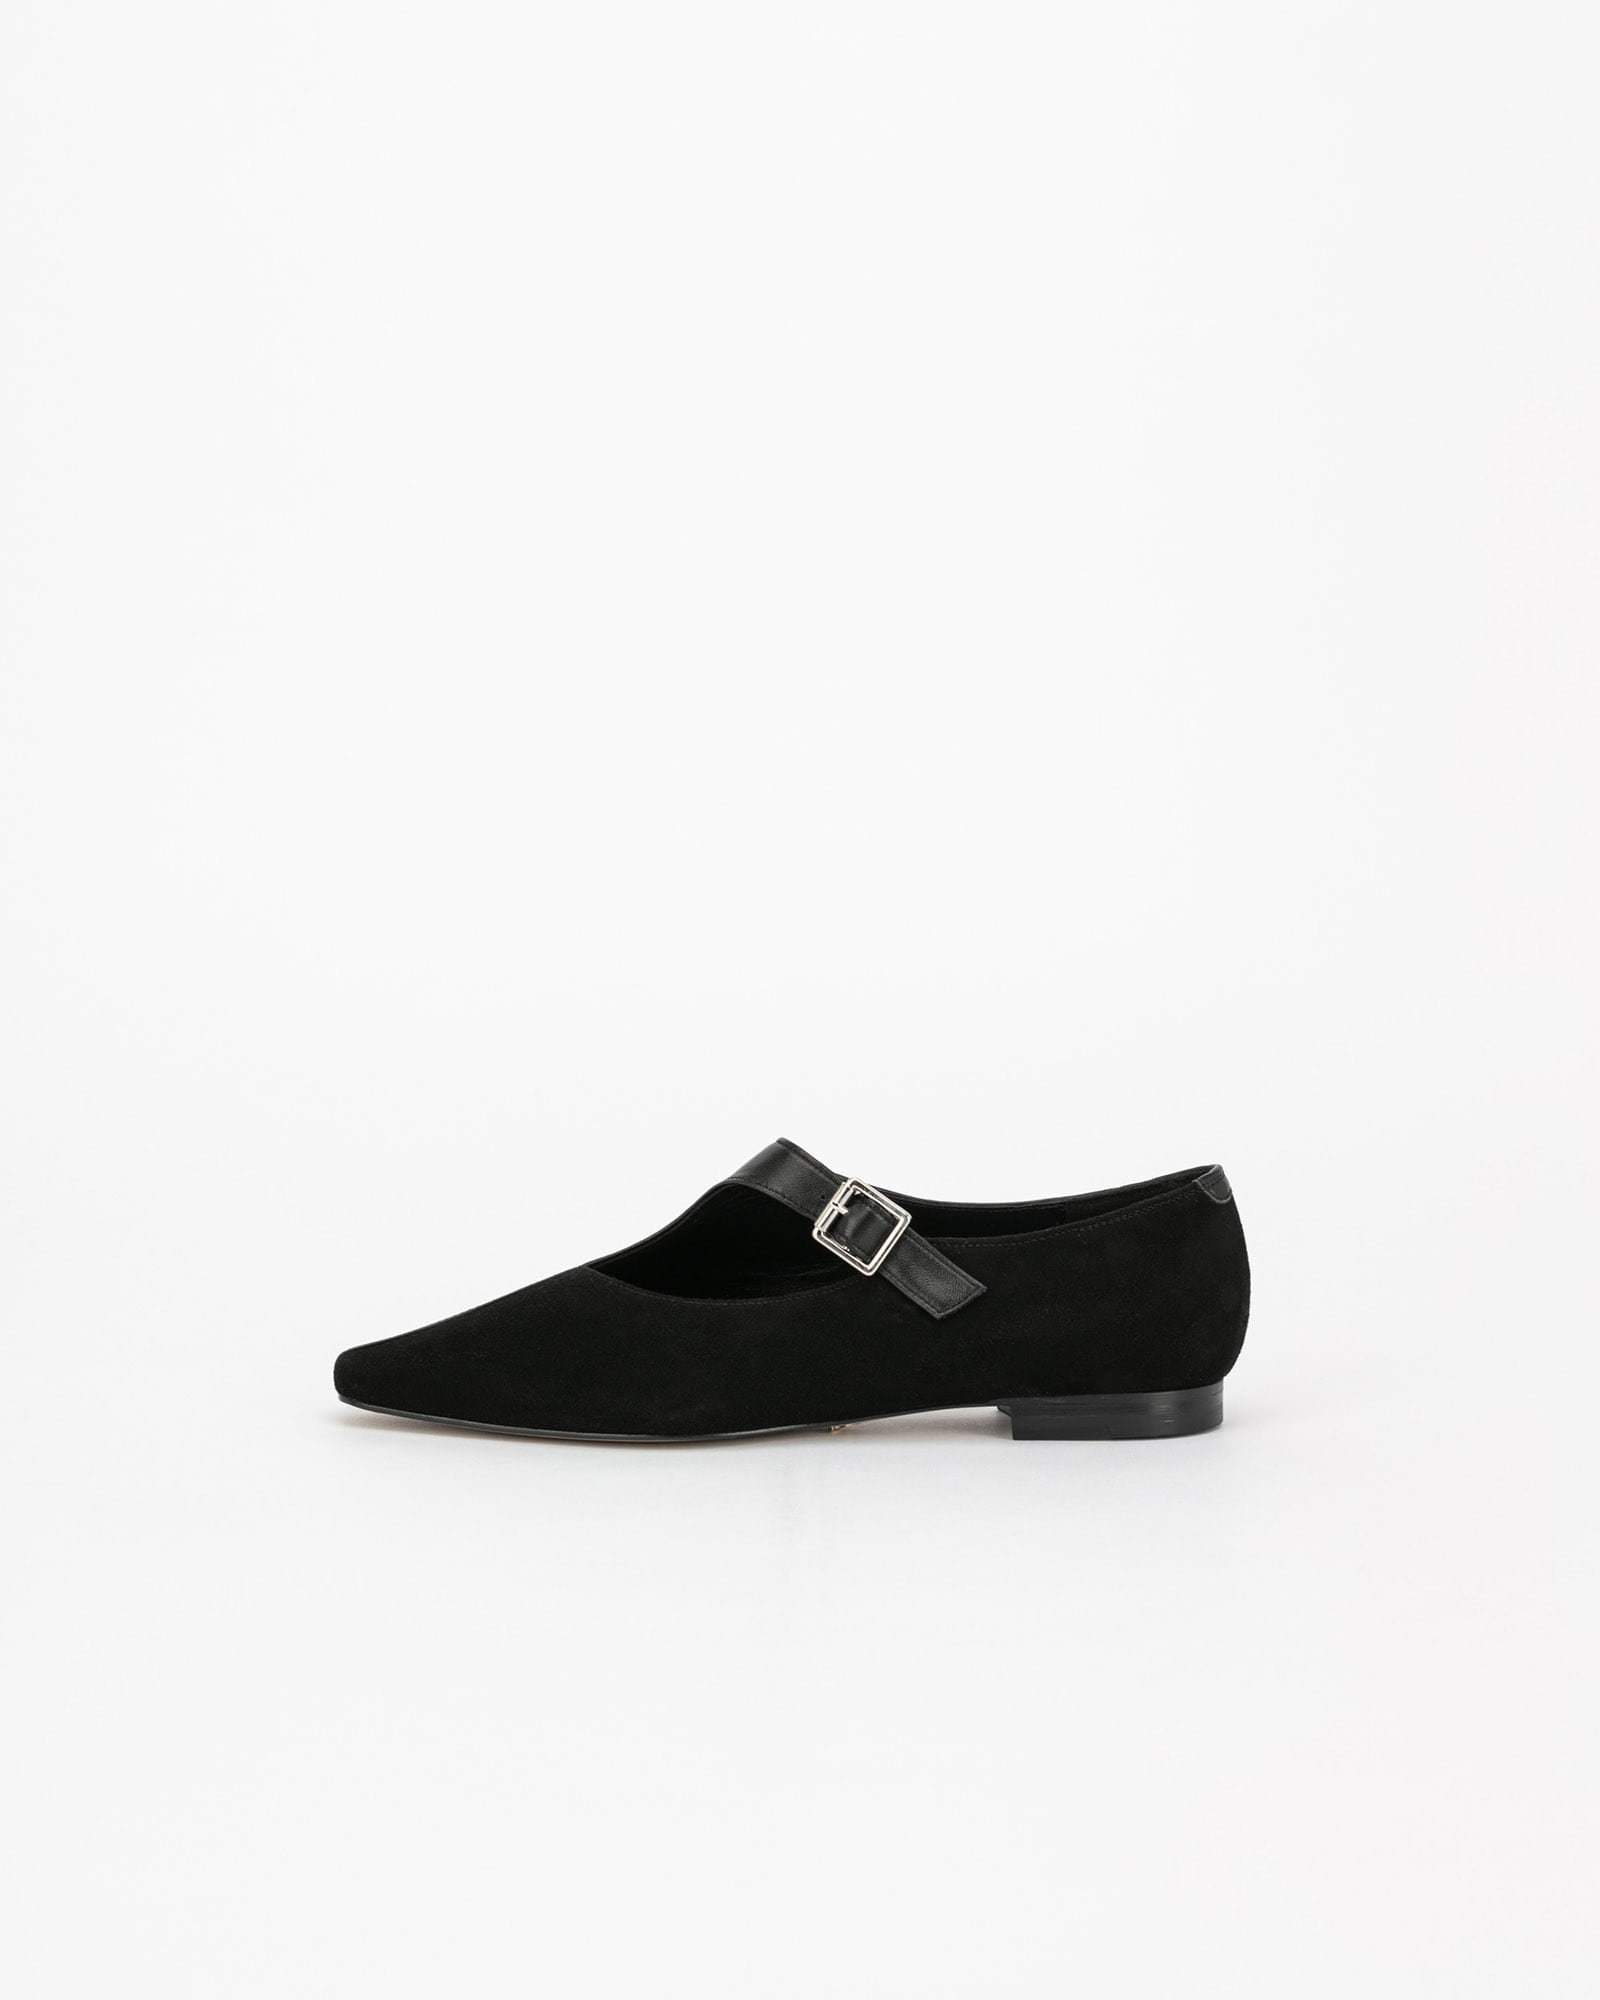 Bruns Strap Flat Shoes in Black